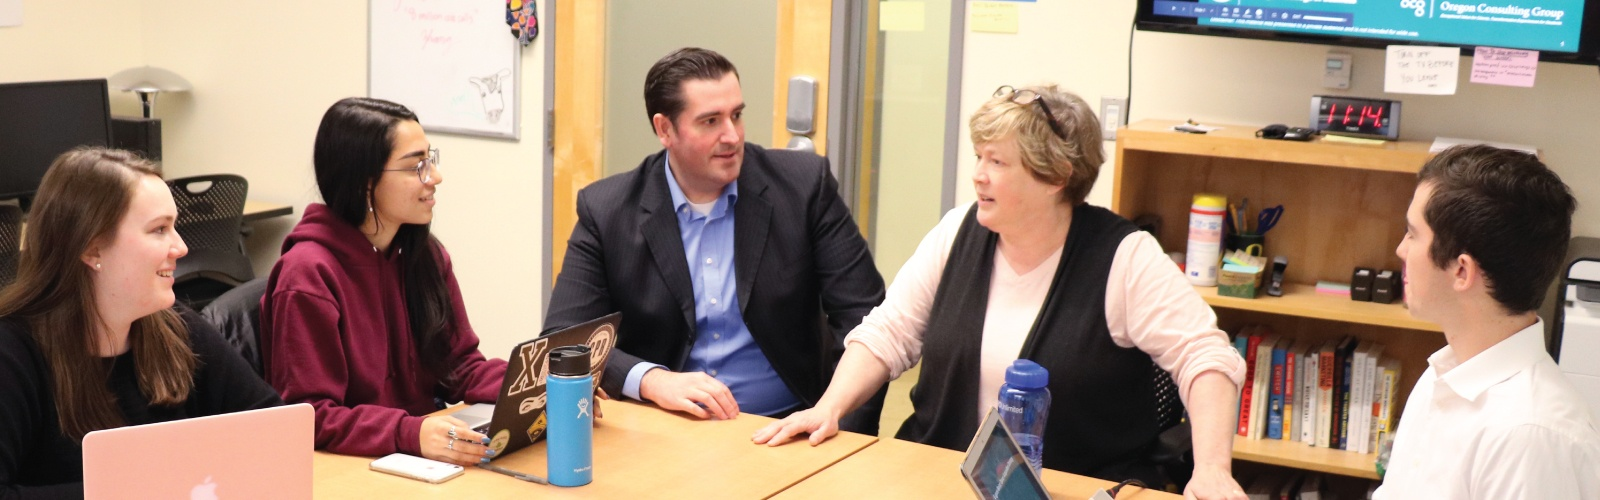 Jared Barlow and Collette Niland chat with students